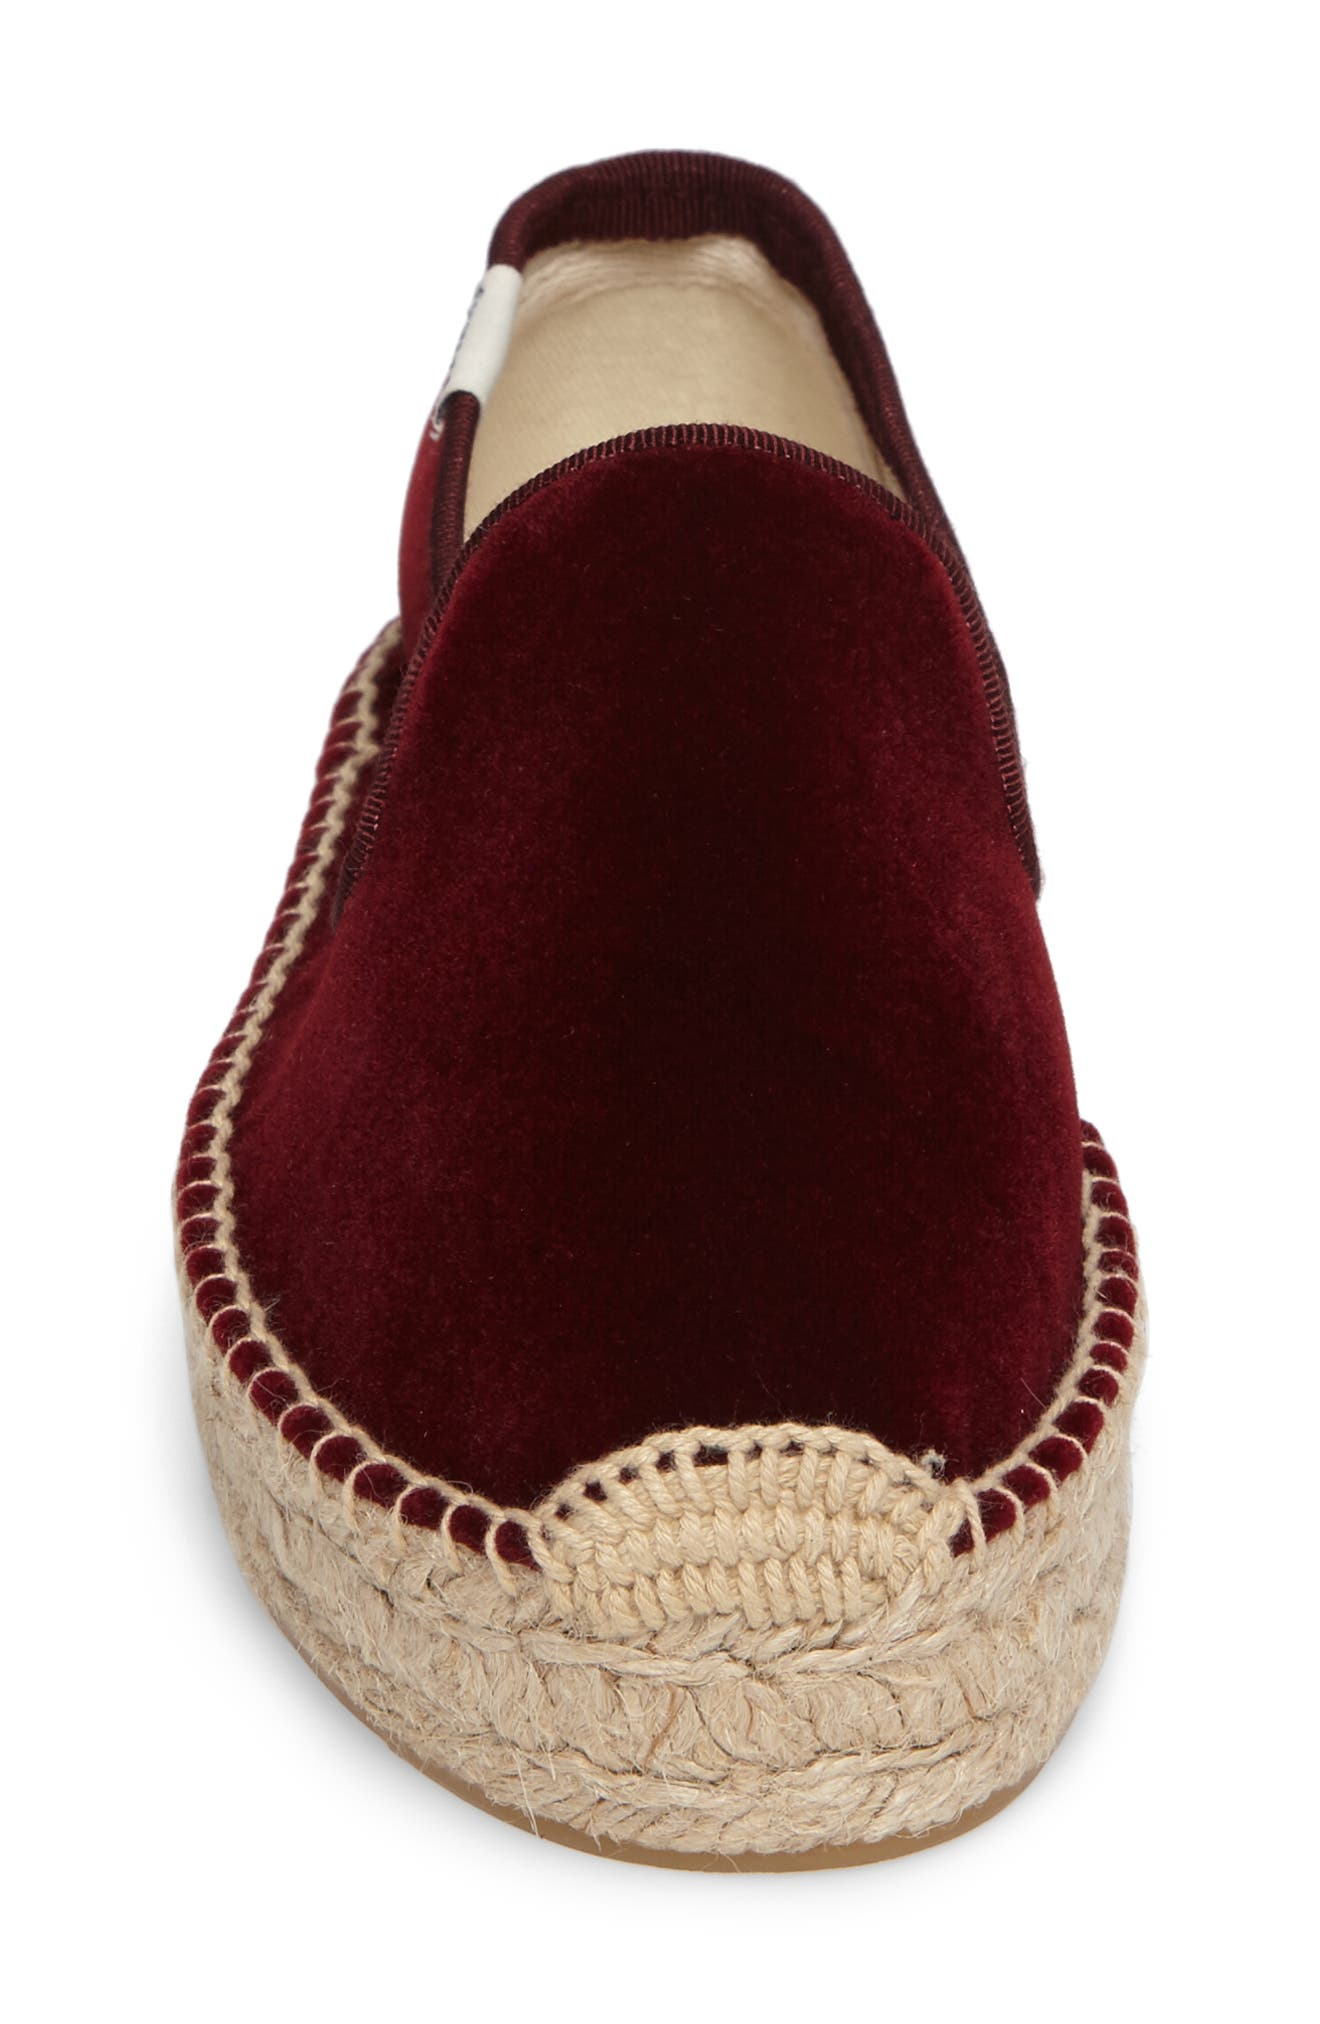 Velvet Smoking Slipper Espadrille,                             Alternate thumbnail 4, color,                             930